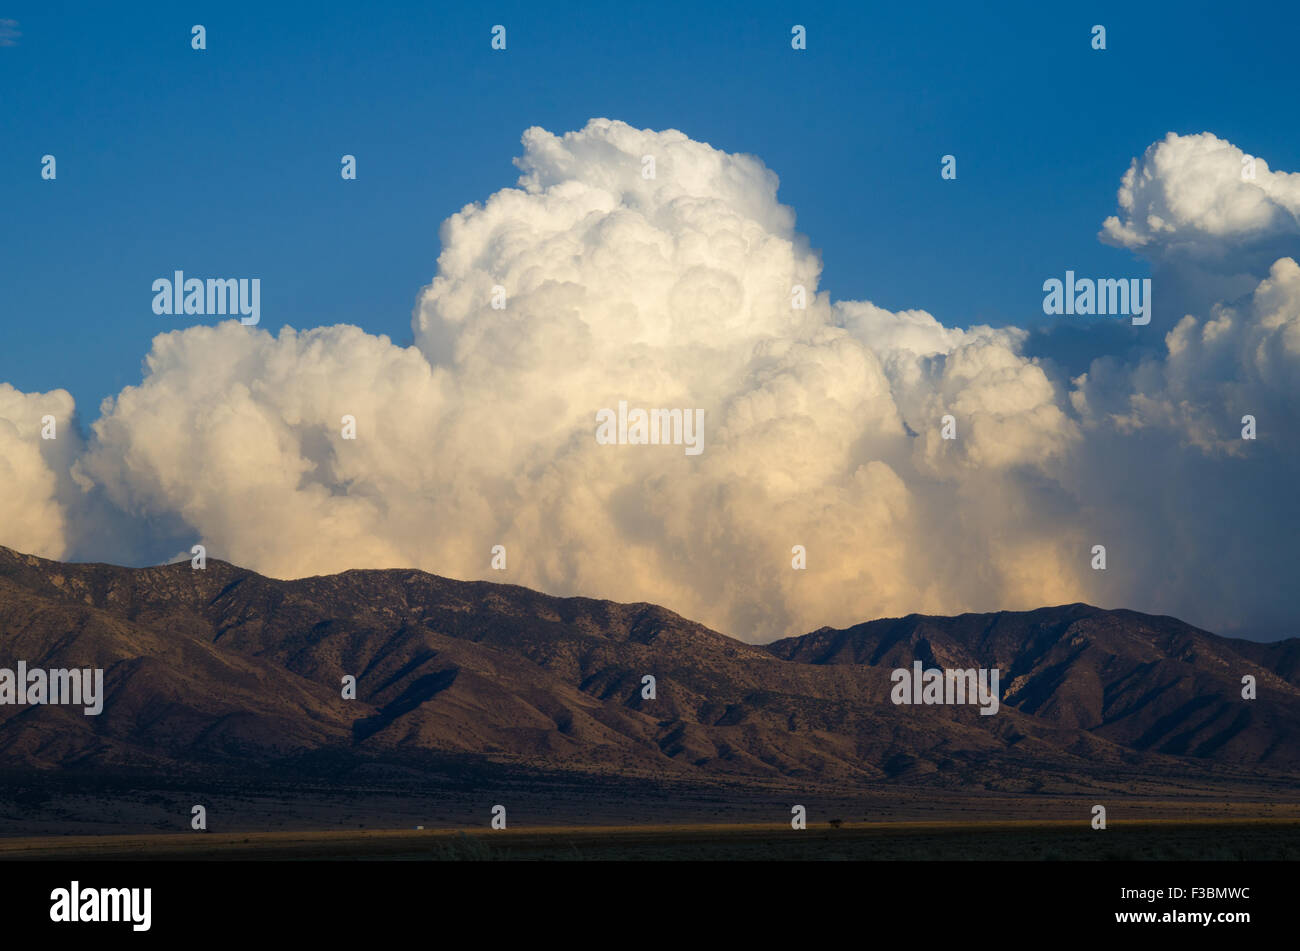 Cumulonimbus clouds over the south end of the Manzano mountains, Valencia co., New Mexico, USA. - Stock Image